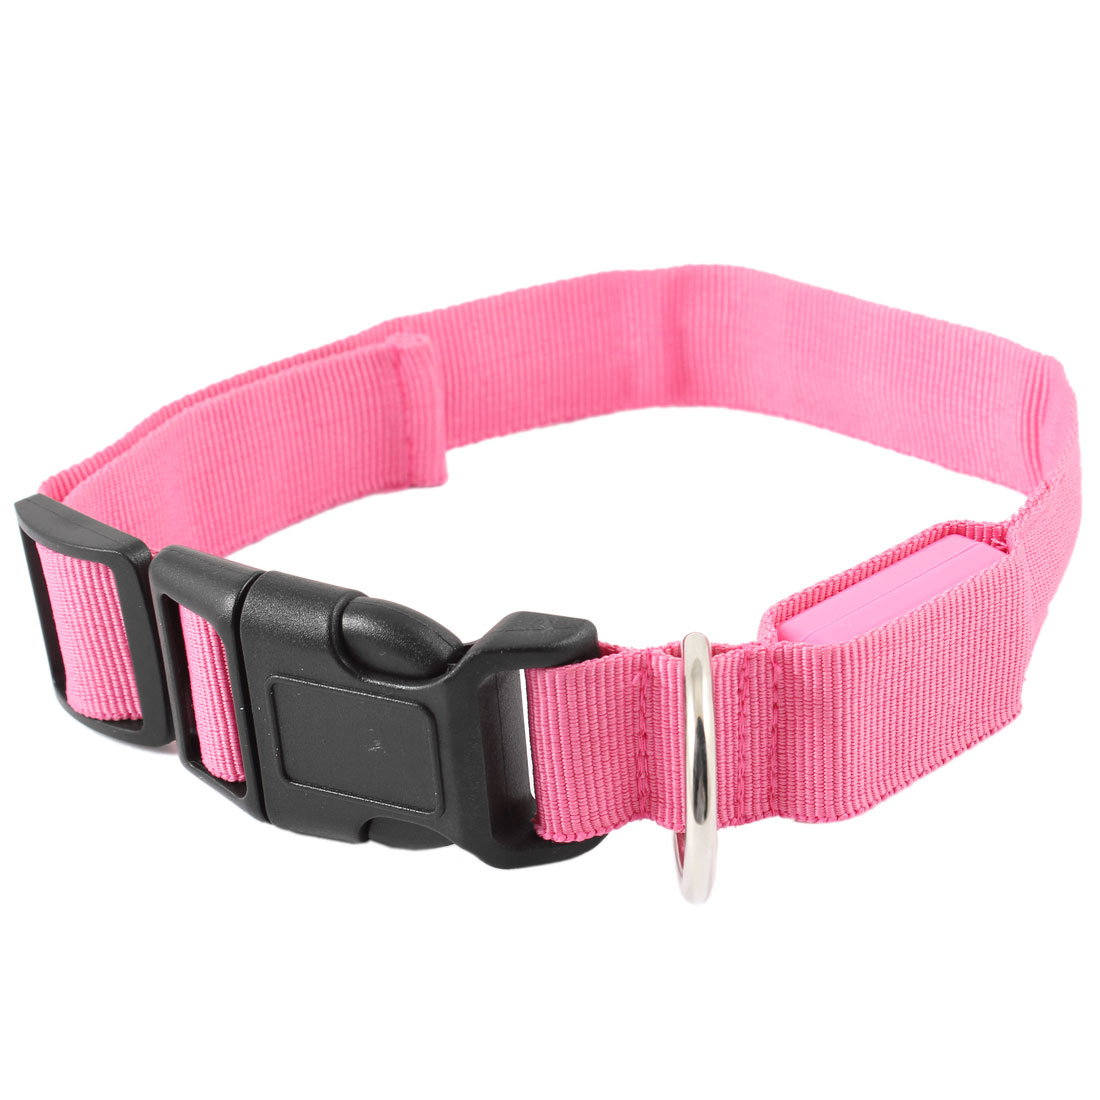 Black Side Buckle Adjustable 3 Modes 5 LEDs Red Light Pet Dog Chihuahua Cat Safety Collar Fuchsia S